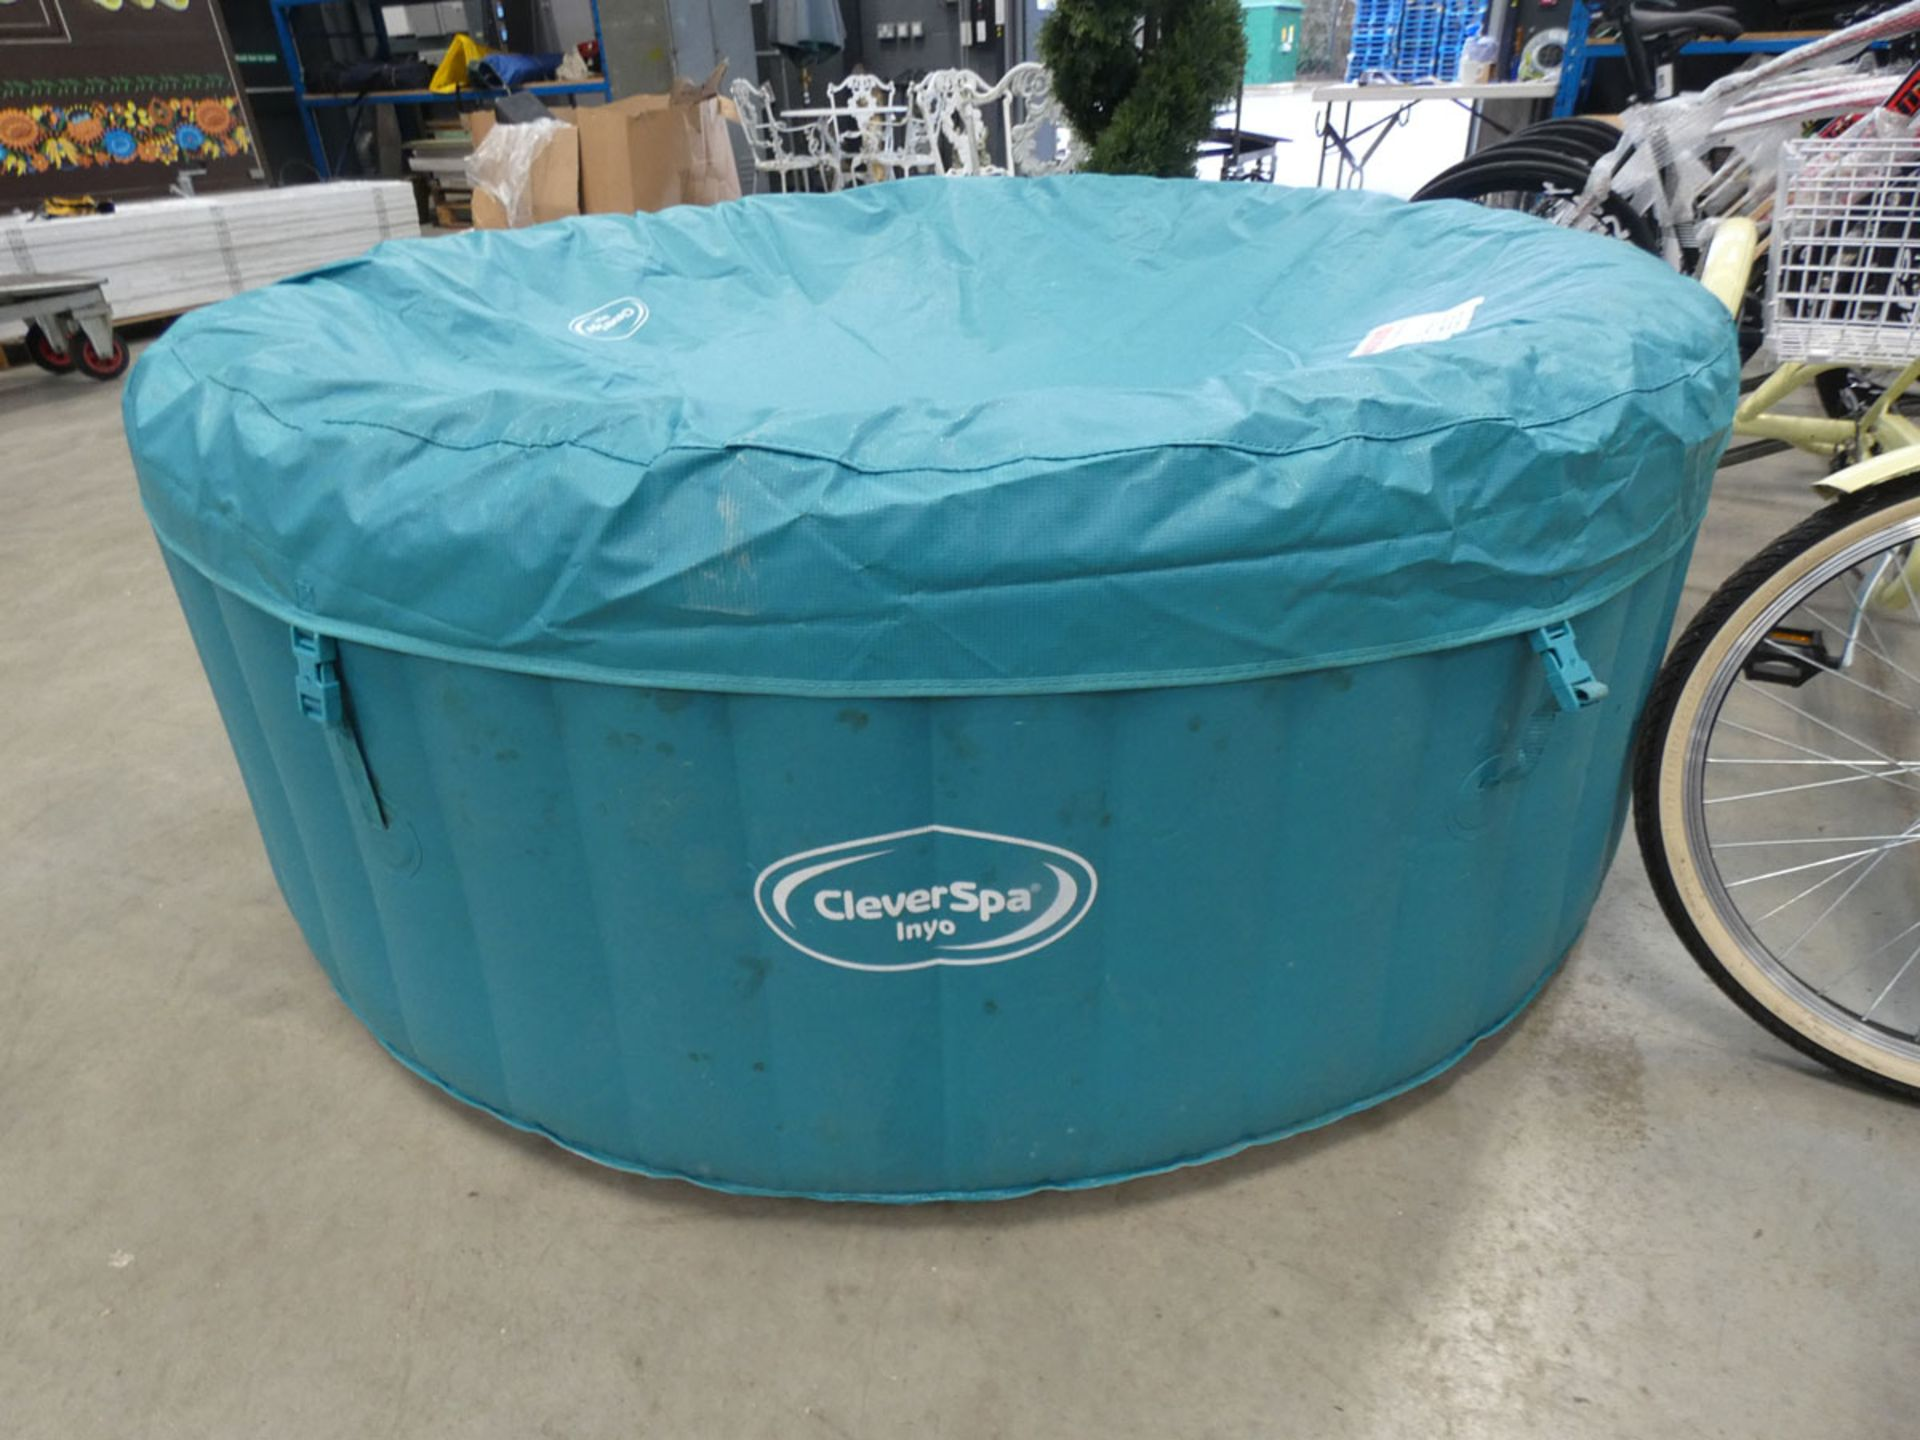 Inflatable clever spa inyo with built in pump